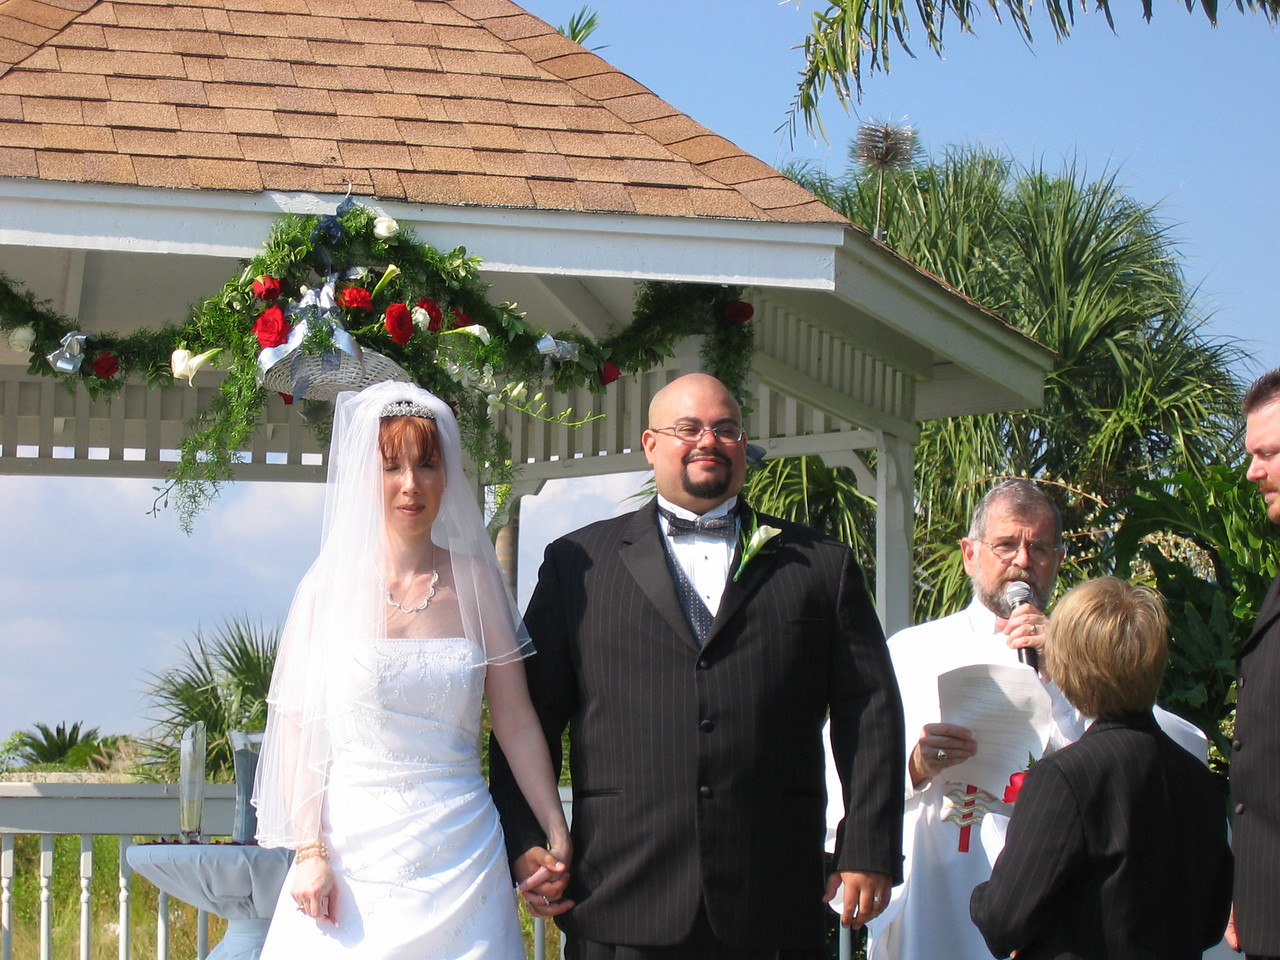 Michele and I take our 1st walk as man and wife.